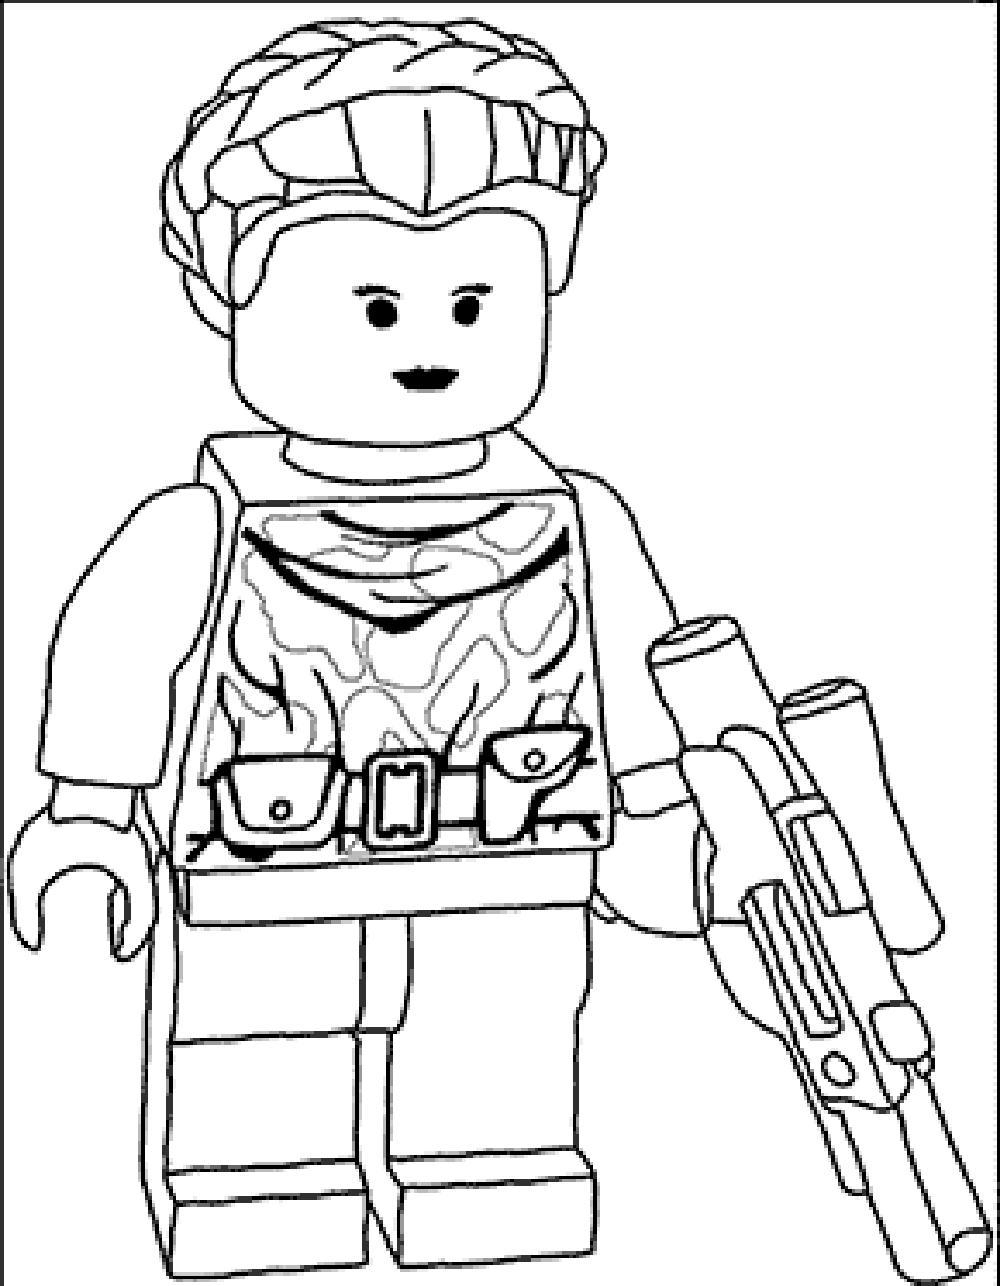 lego star wars printables lego star wars printable coloring page over 100 designs star lego printables wars